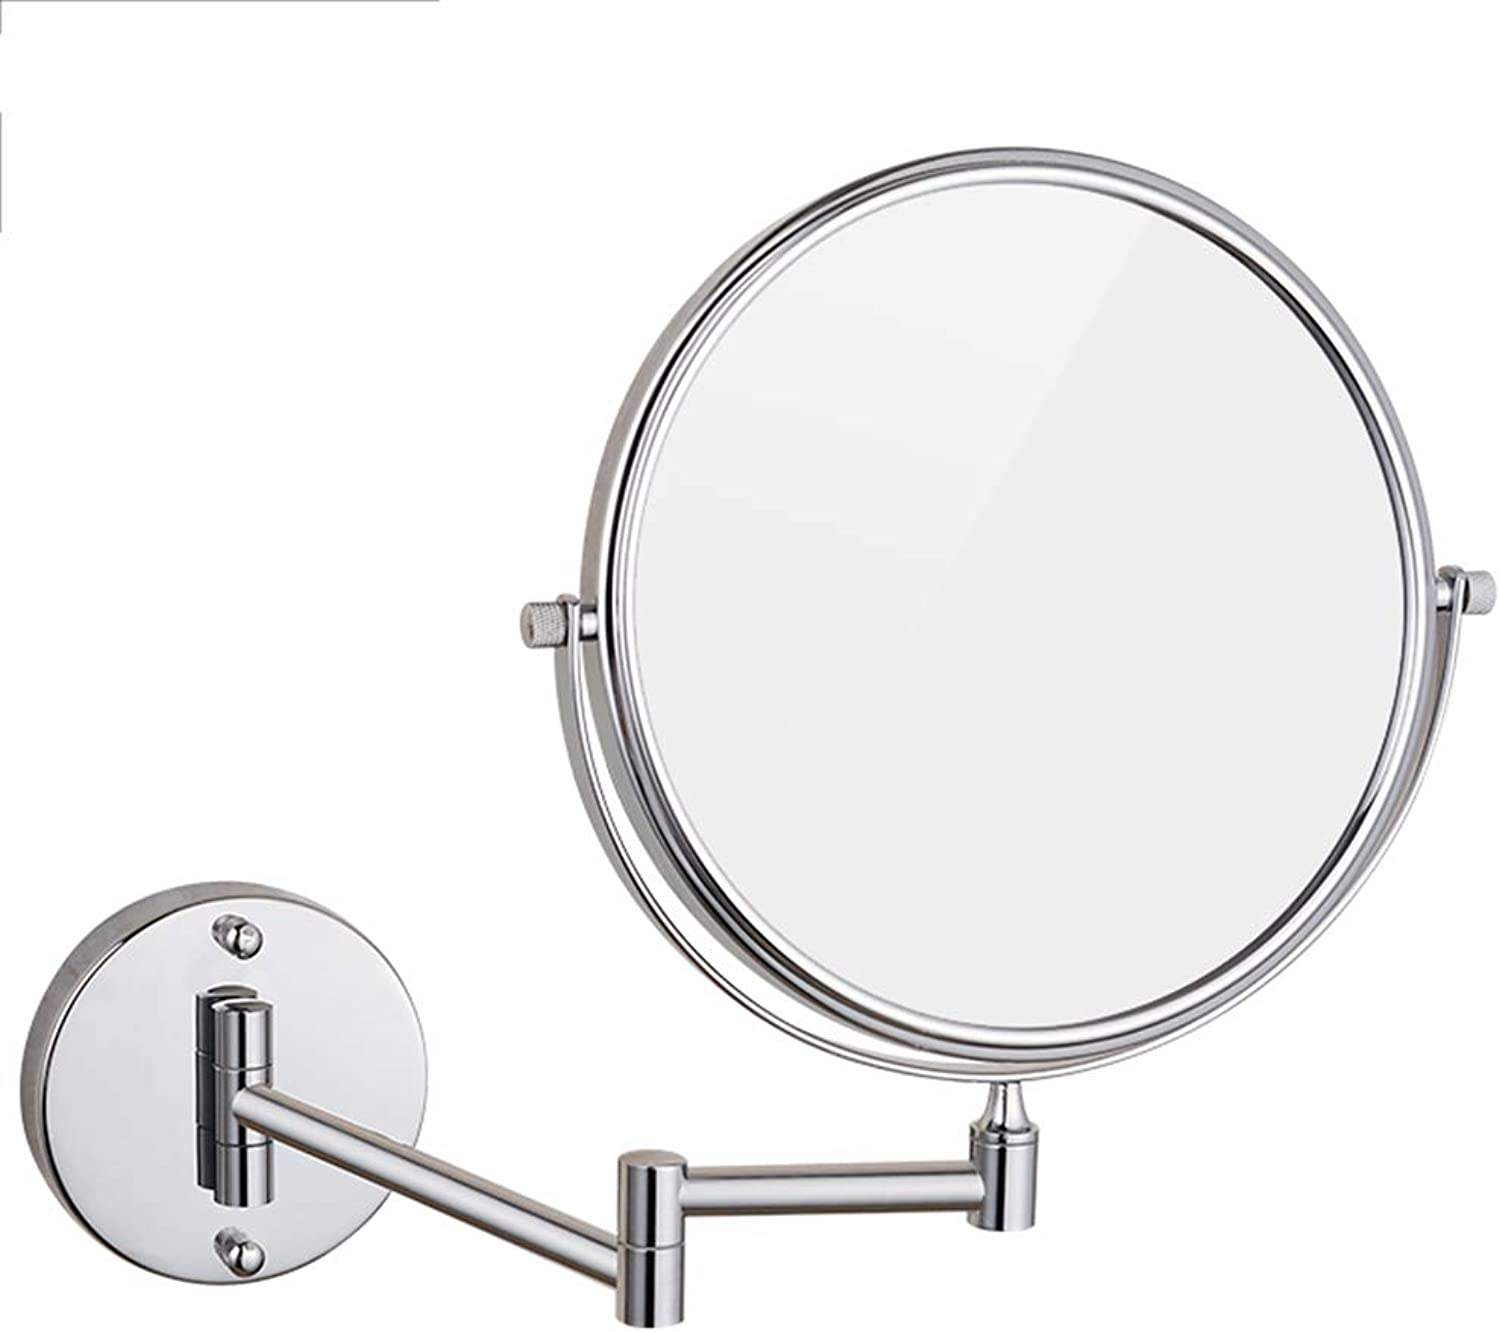 GUOWEI Mirror Wall-Mounted Bathroom HD Makeup Round Simple,2 Materials,2 Sizes (color   Silver-Steel, Size   Diameter -20cm)